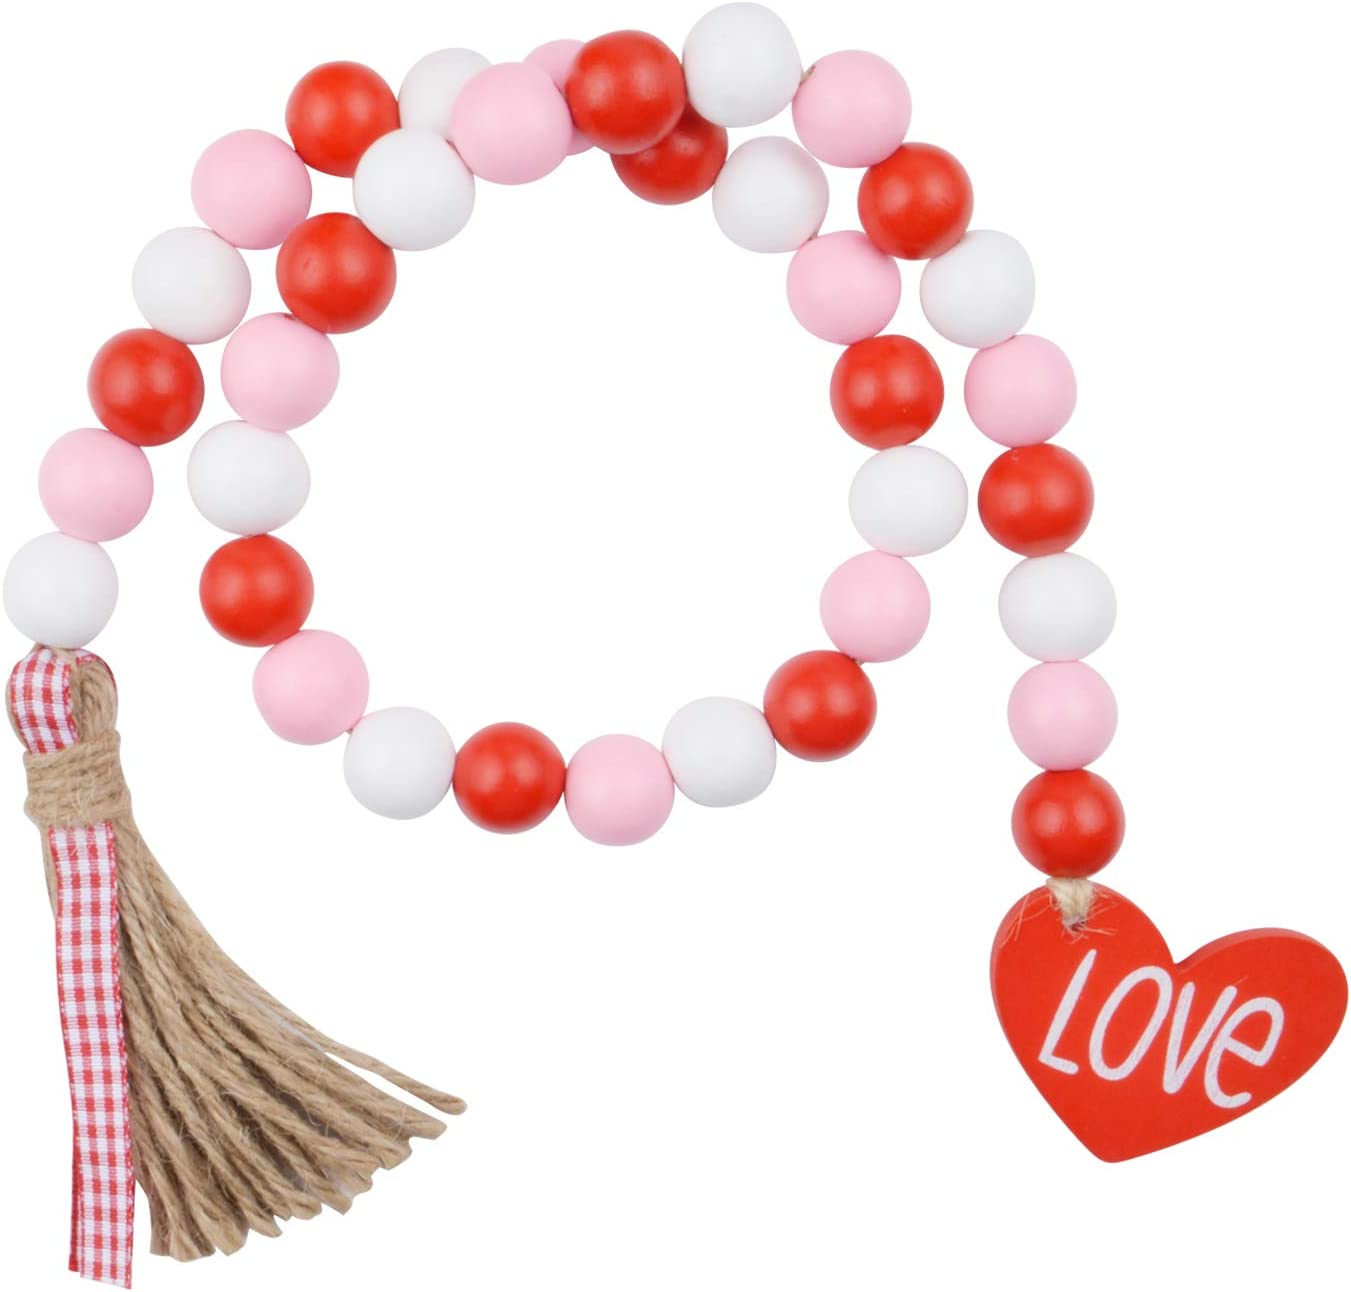 Wood Bead Garland Mothers Day Farmhouse Beads Tassel Garland With TasselsWooden Tag Tiered Tray Garland Large Natural Beads Garland